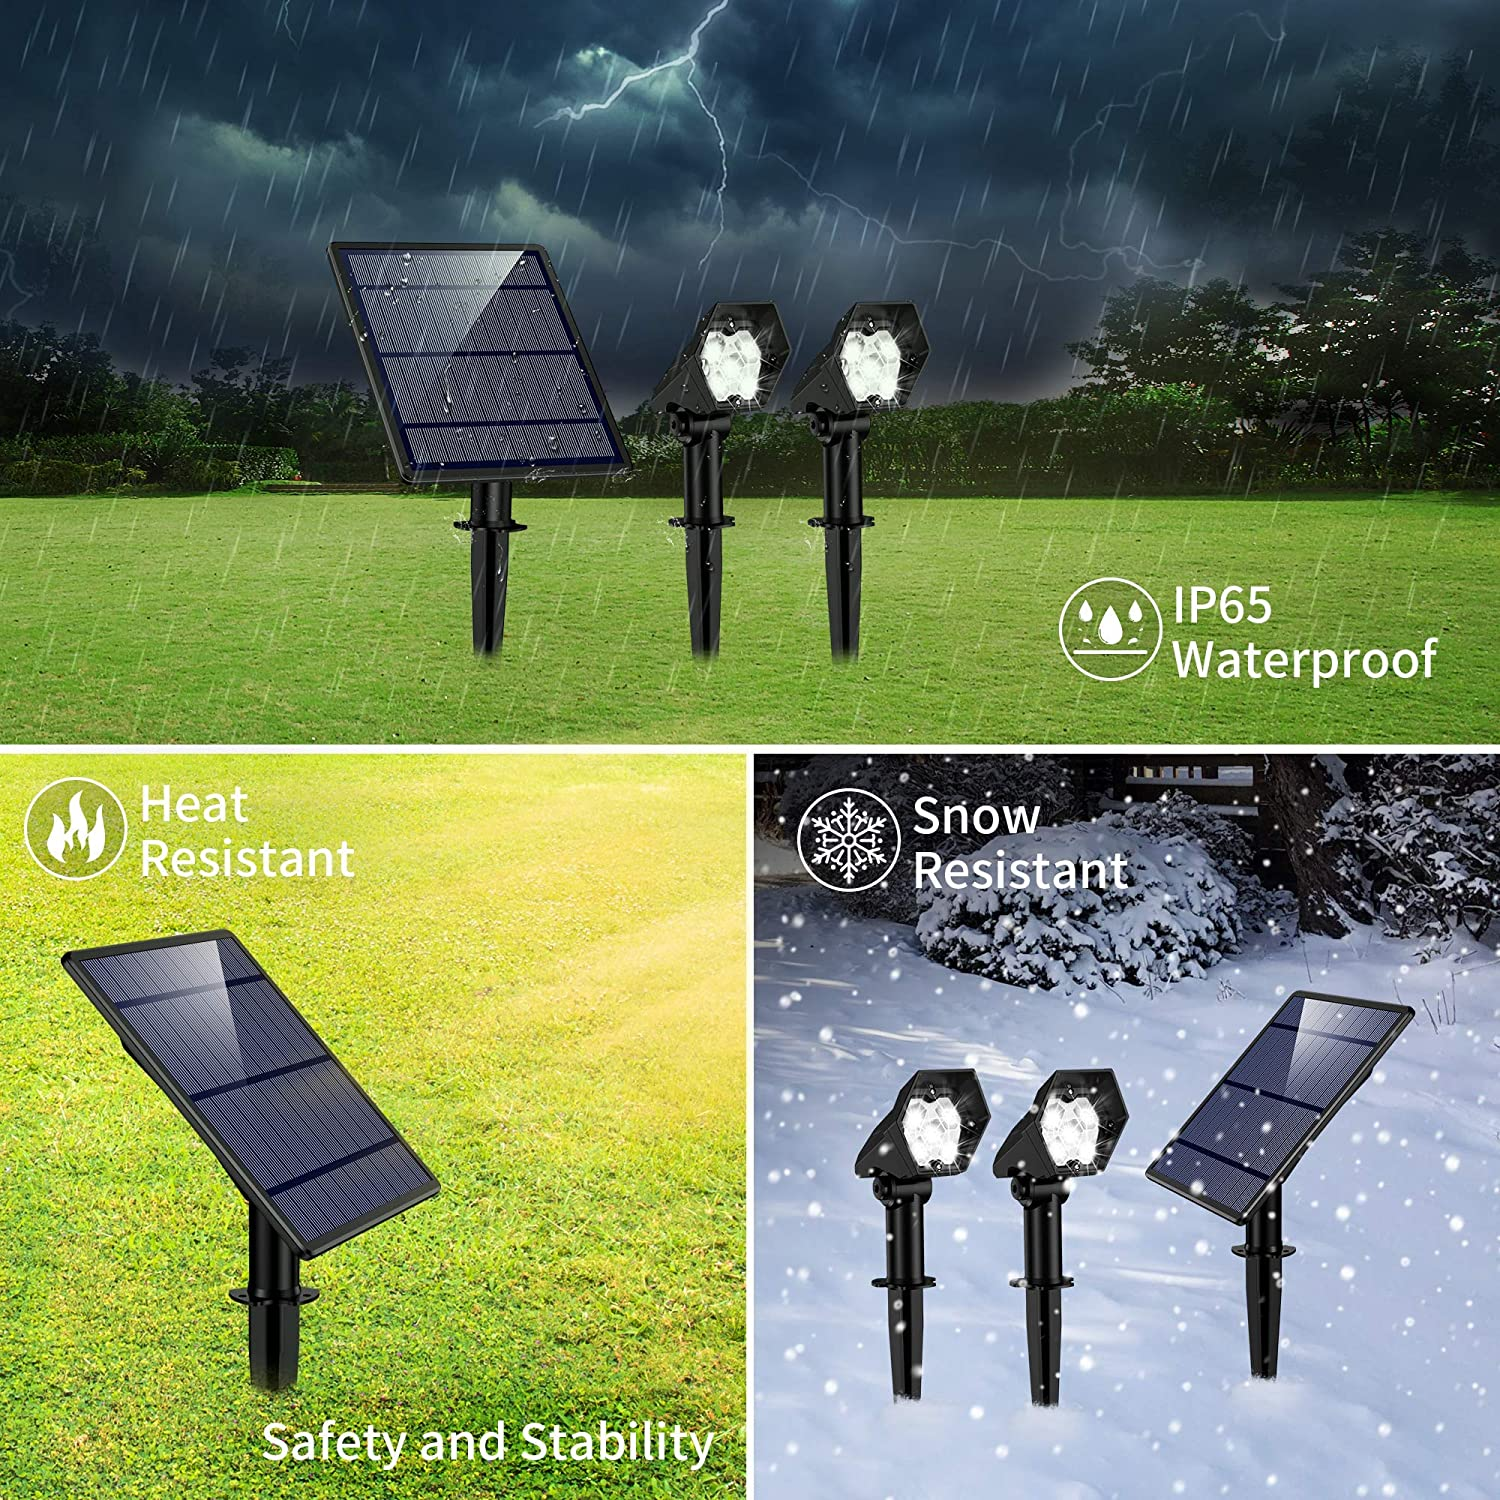 2-in-1 Waterproof 5 LED Solar Lights Wall Lights Auto On/Off